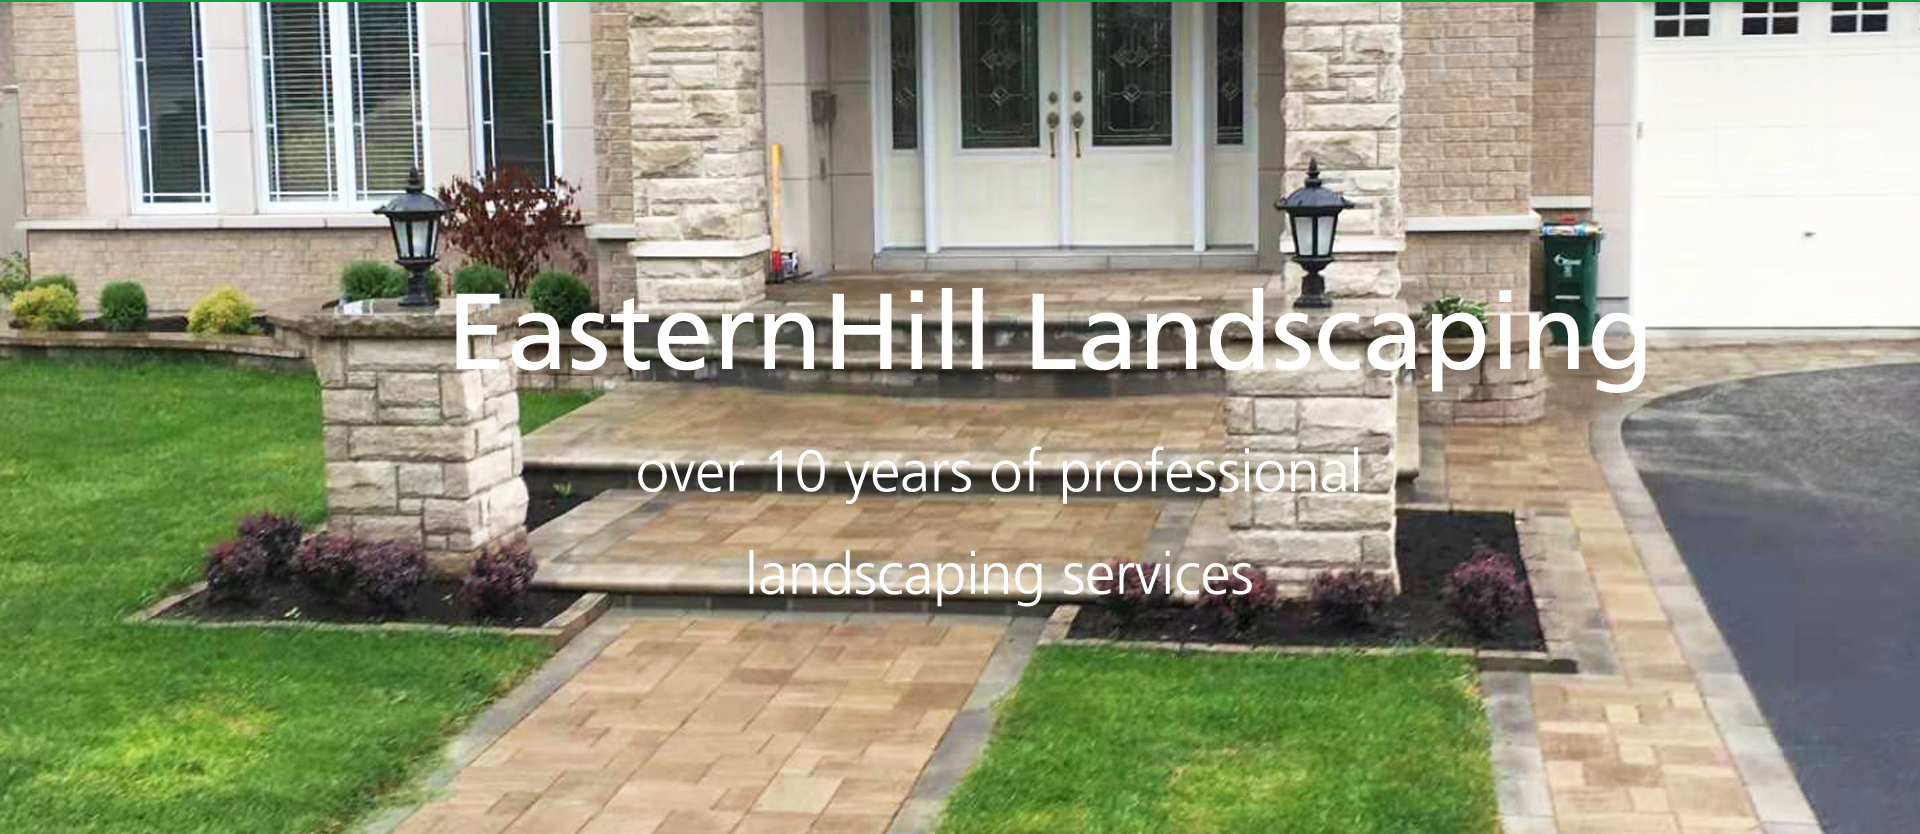 Second slide | Eastern Hill Landscaping